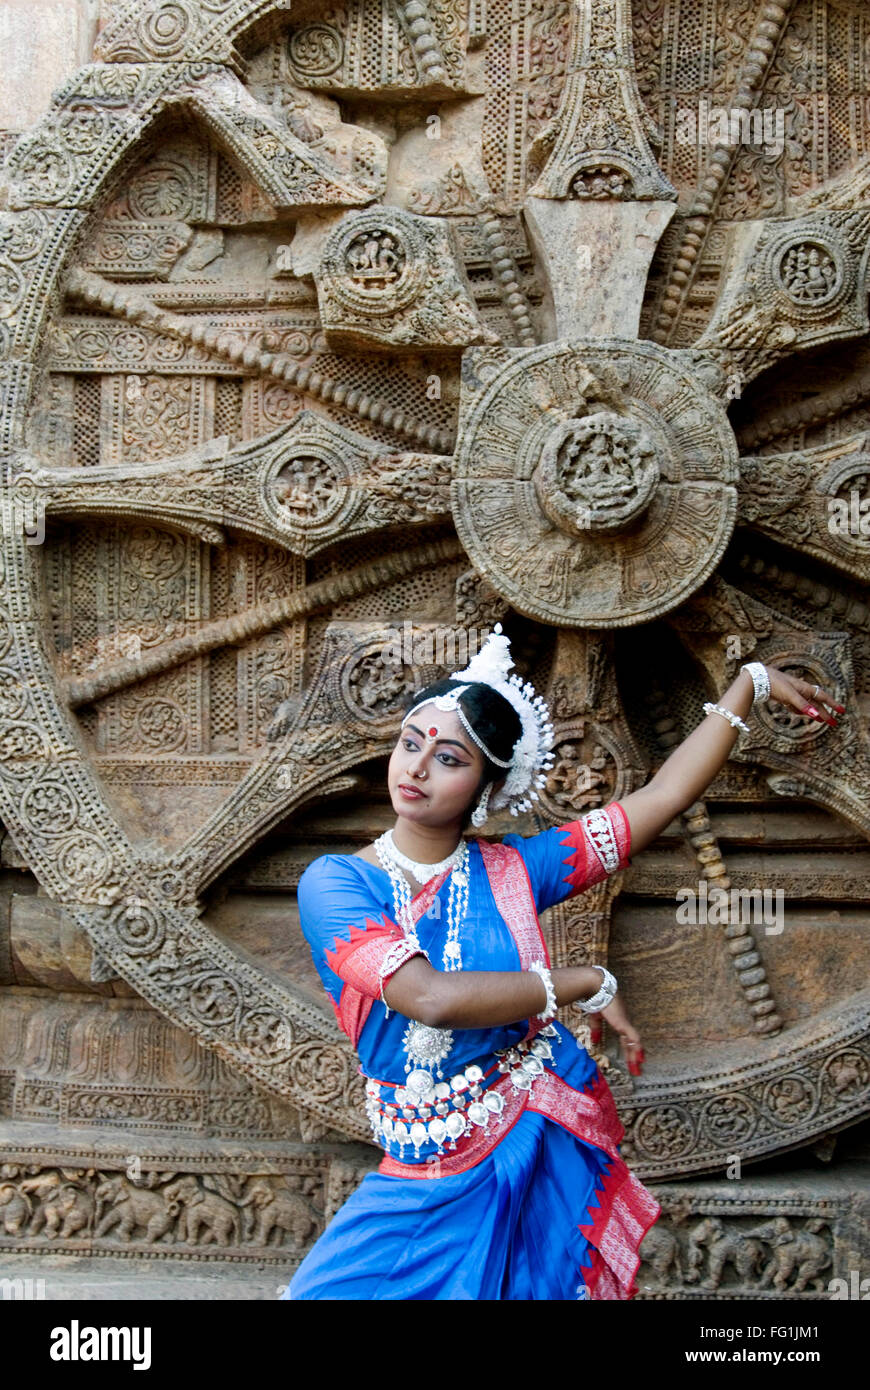 Odissi dancers strike pose re enacts Indian myths such as Ramayana iconic Sun Chariot Sun temple complex Konarak - Stock Image